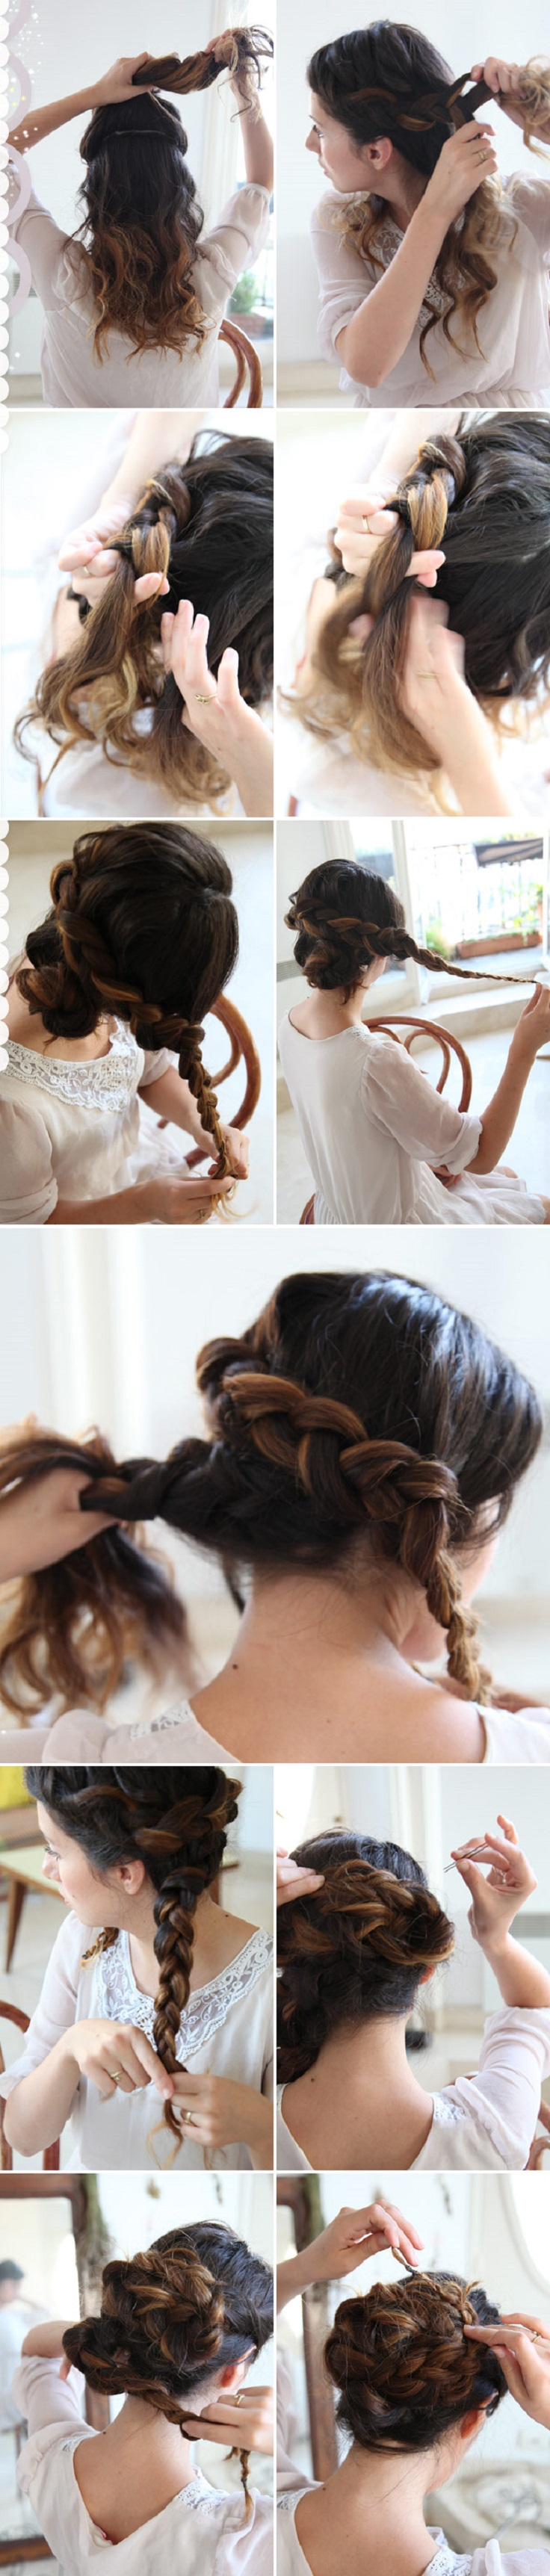 flowed-braided-updo